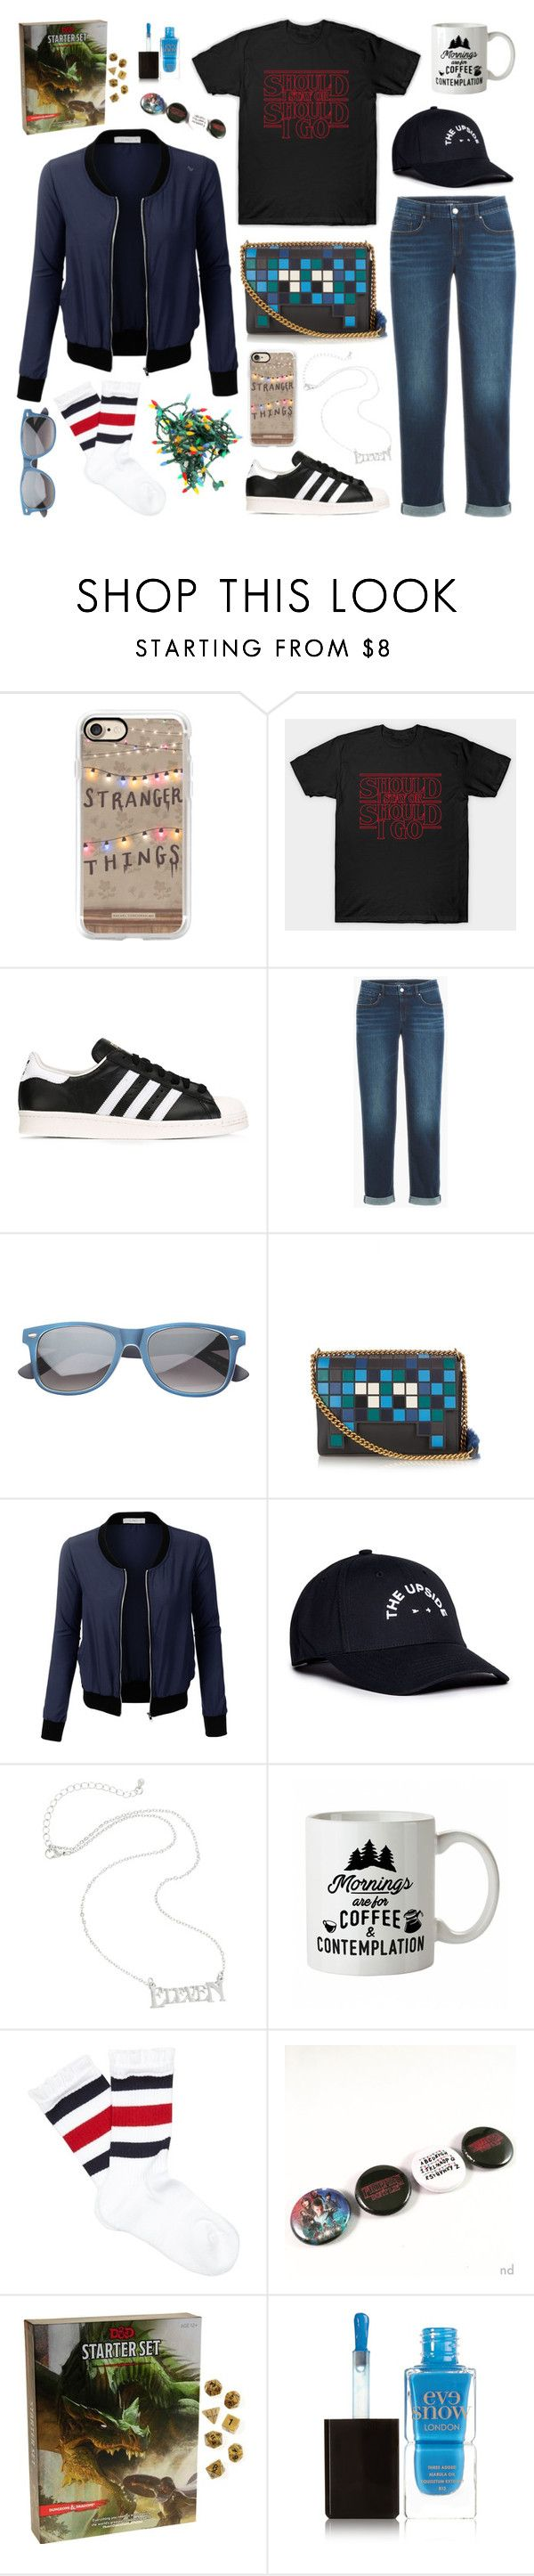 """""""Look for 'Stranger Things'"""" by inspiredsara ❤ liked on Polyvore featuring Casetify, adidas Originals, Anya Hindmarch, LE3NO, The Upside, Gucci and Eve Snow"""